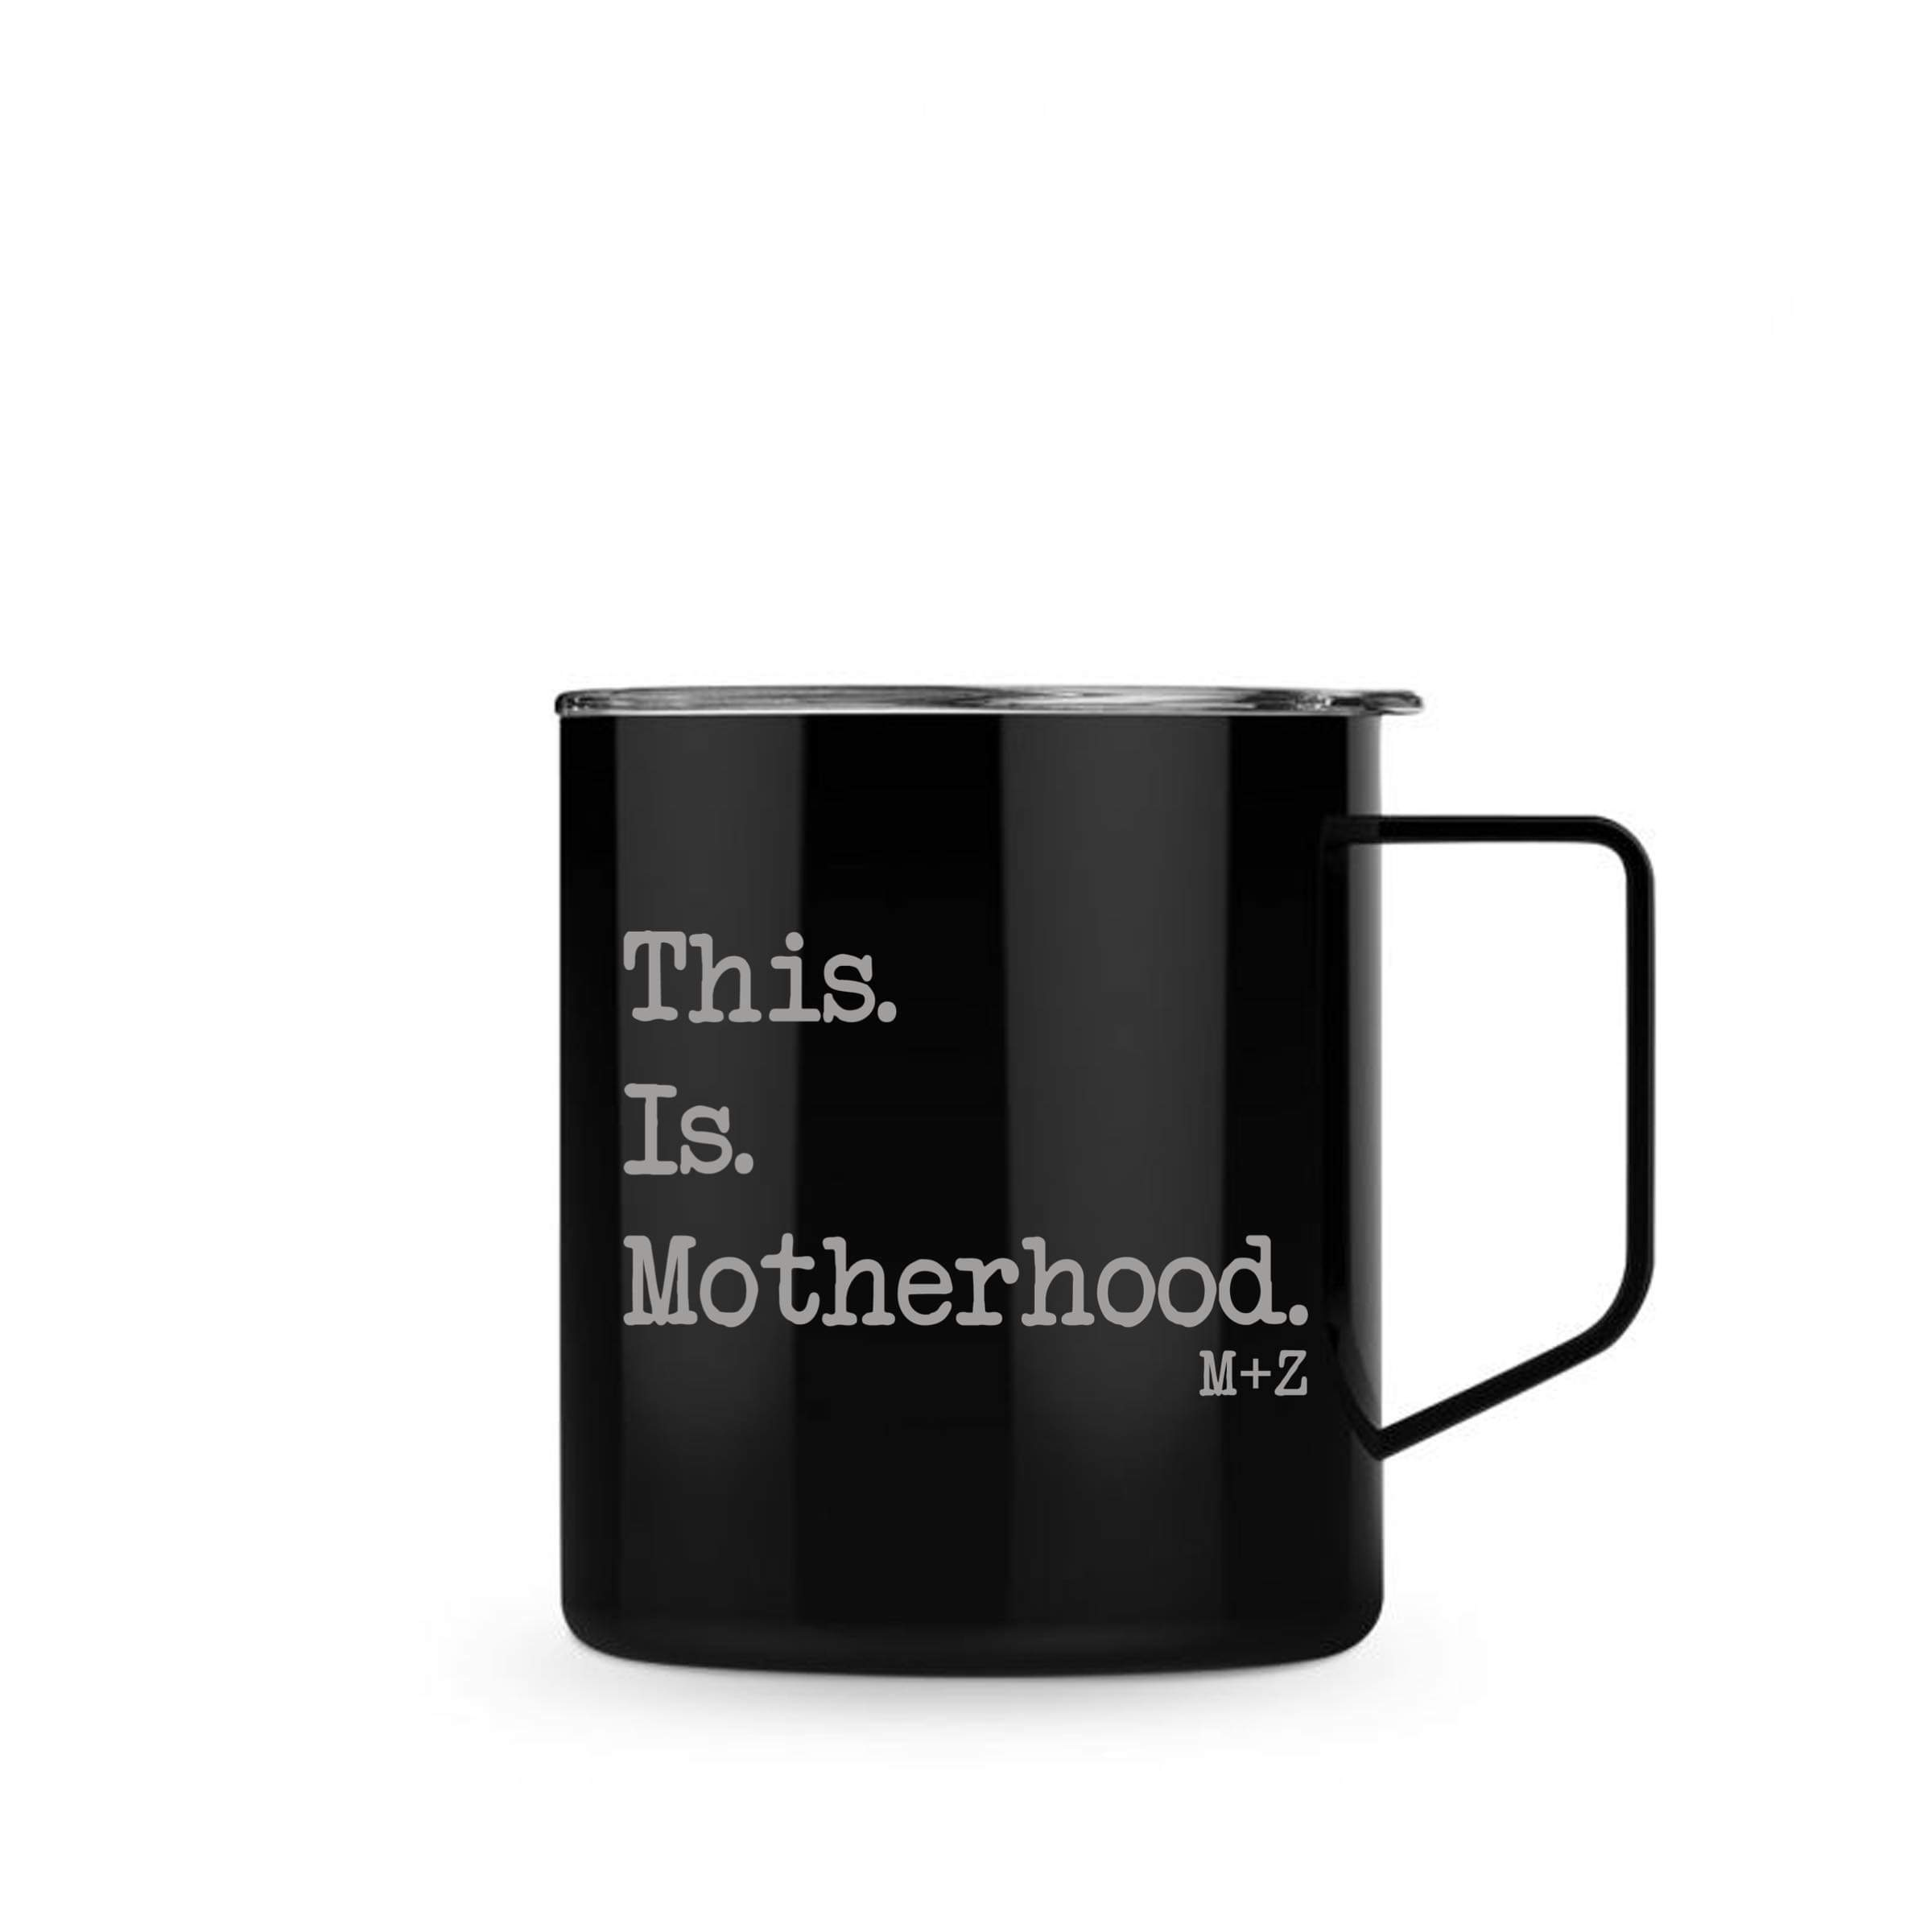 This. Is. Motherhood. Mug/Cup